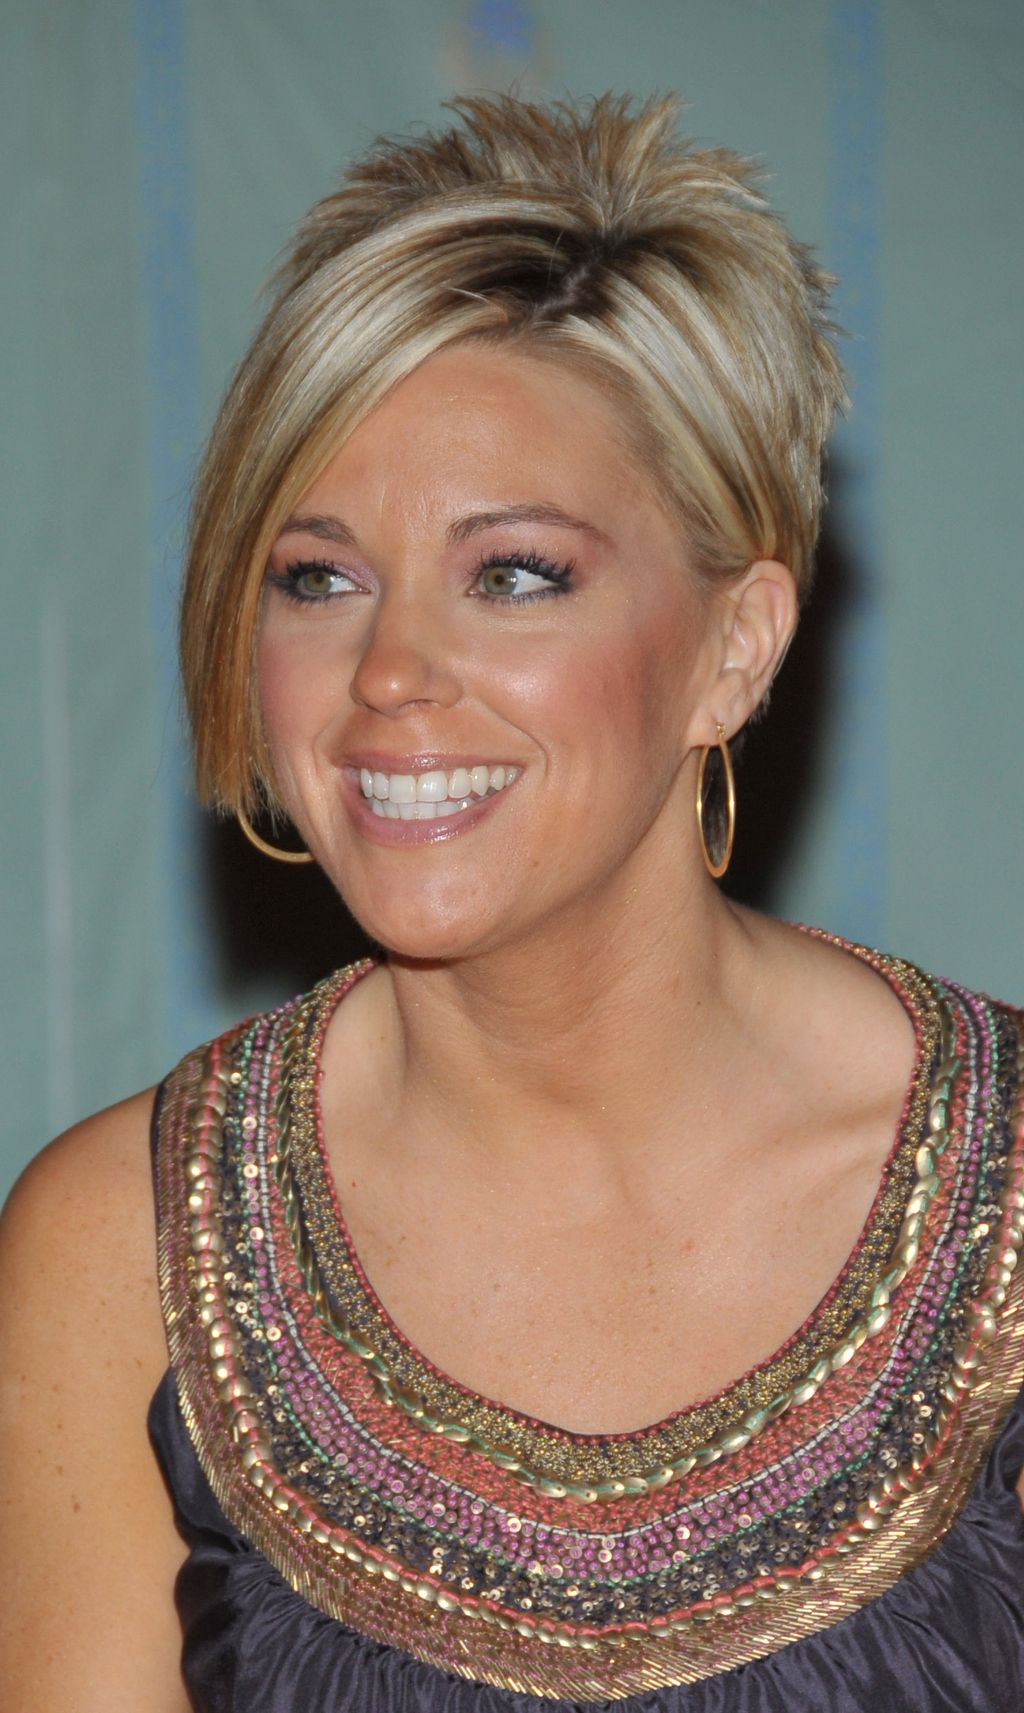 a tribute to kate gosselin's iconic spiky reverse mullet bob